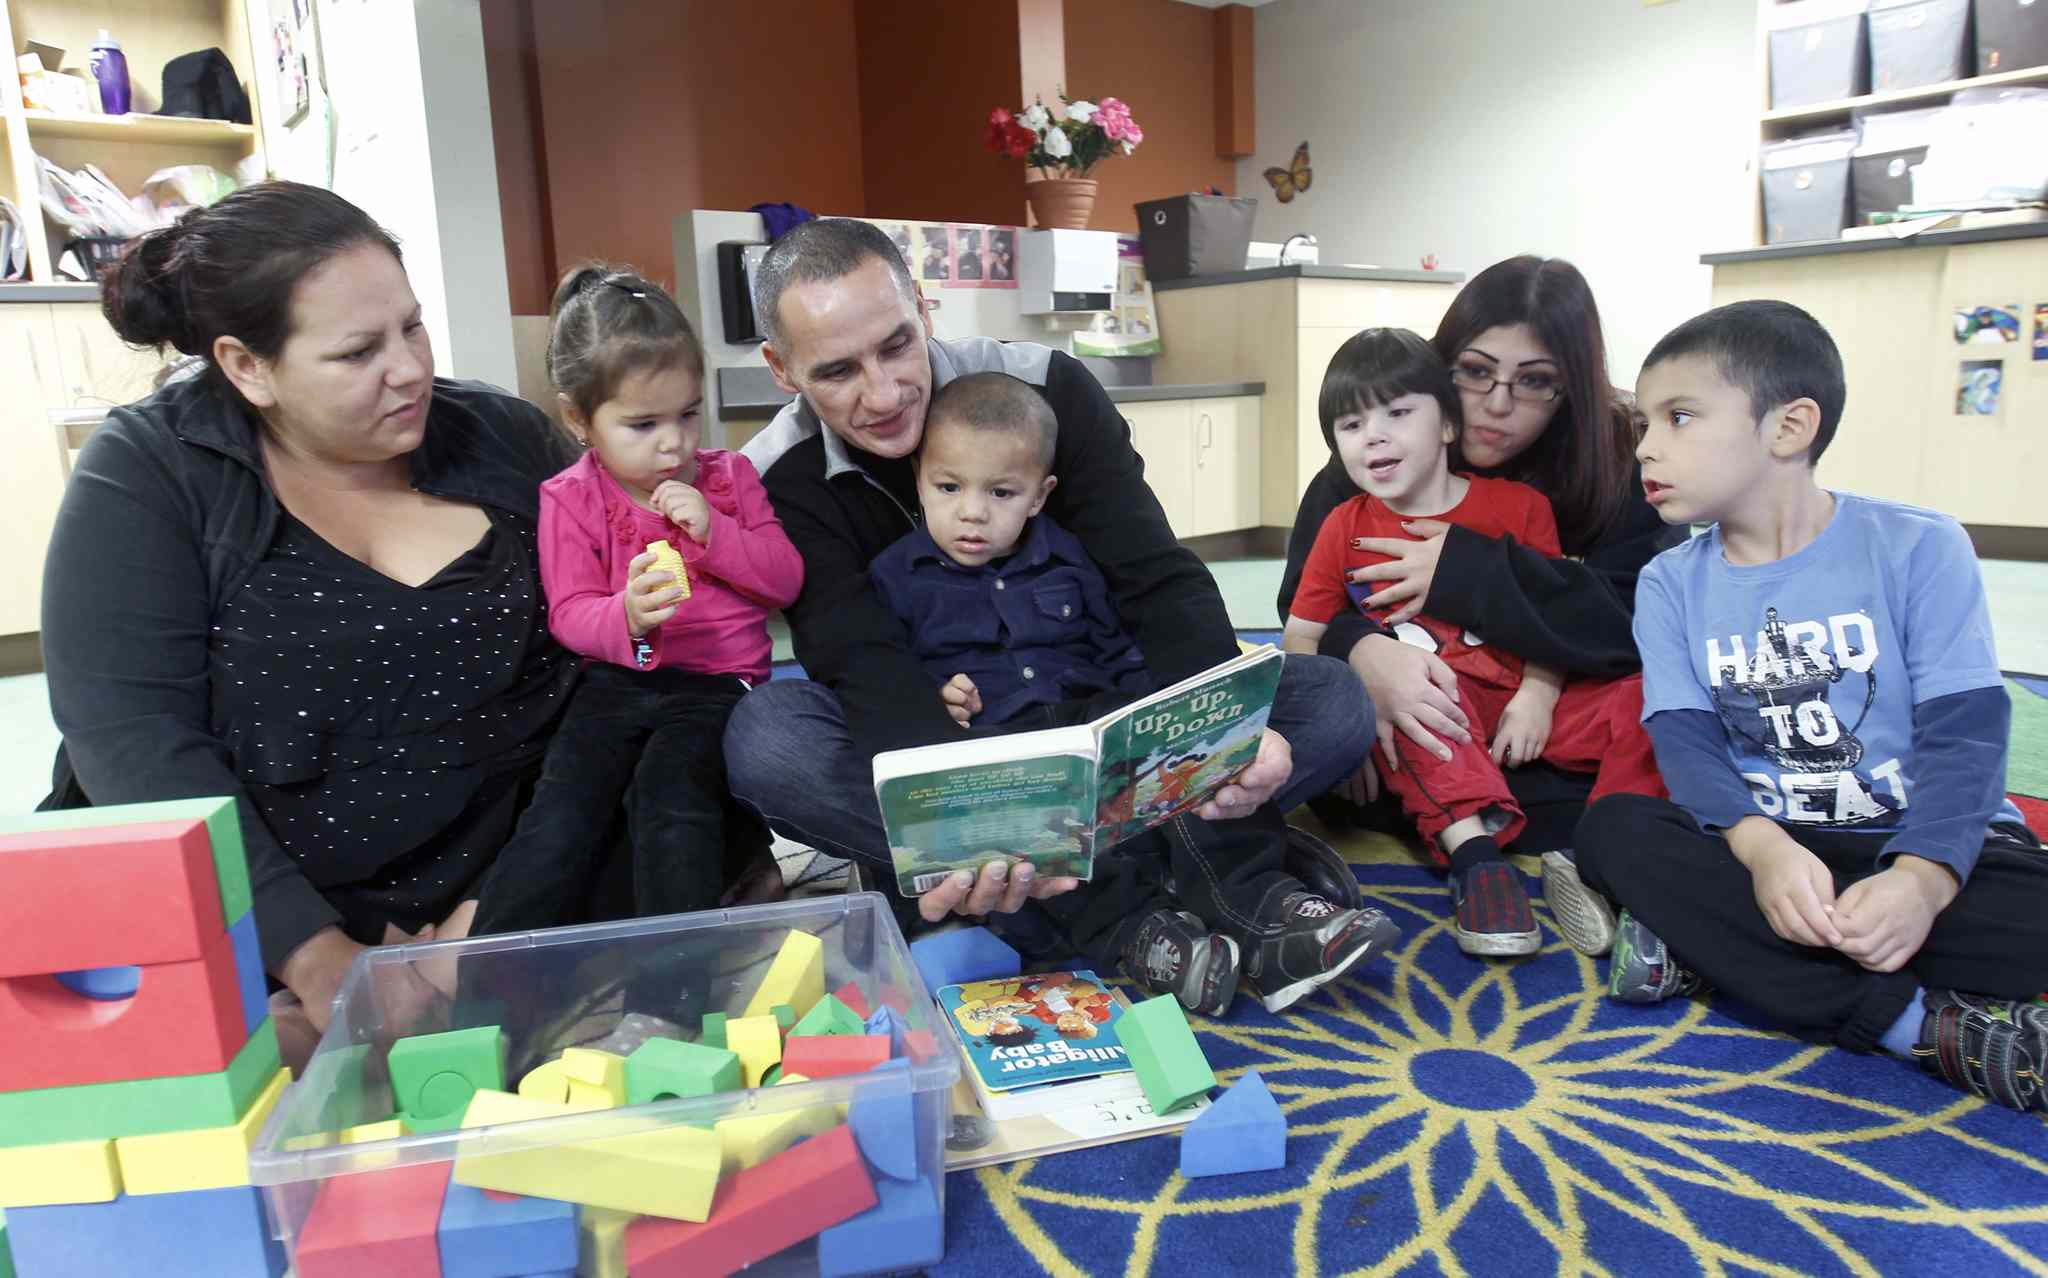 L to R- Jennifer Fincaryk, her daughter Kyrstyn Fleury, Minister of Children and Youth Opportunities Kevin Chief, Jennifers?s daughter ? Kelson Fleury, Mother Ashley Vivier, and her son Christopher Grant, and daughter Alexander Vivier at Lord Selkirk Childcare Centre- 102-269 Dufferin? See Carol Sanders story- Oct 03, 2014   (JOE BRYKSA / WINNIPEG FREE PRESS)